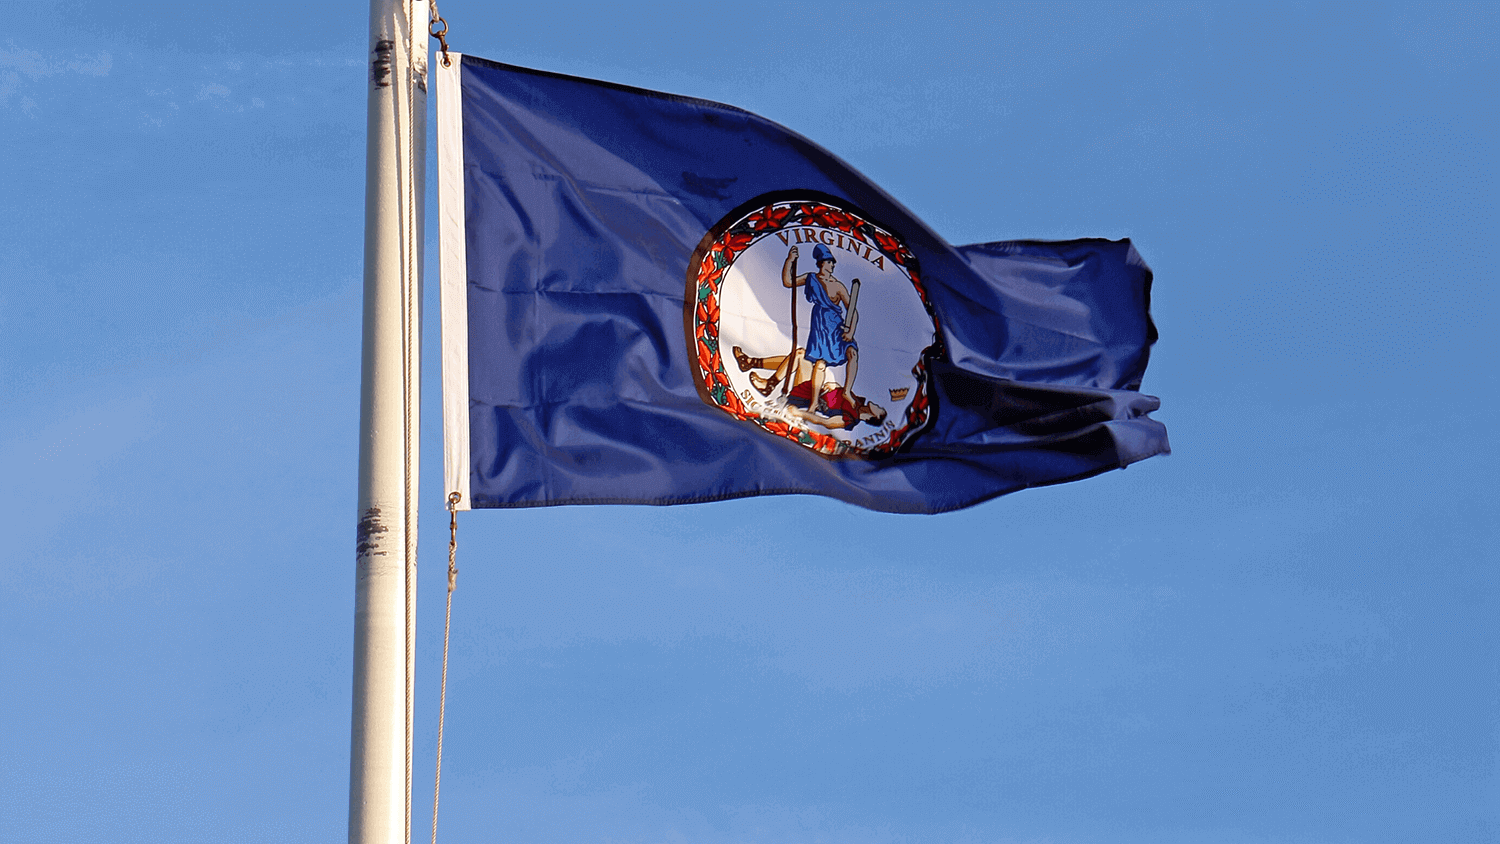 Virginia's New Wage Statement Requirements for 2020